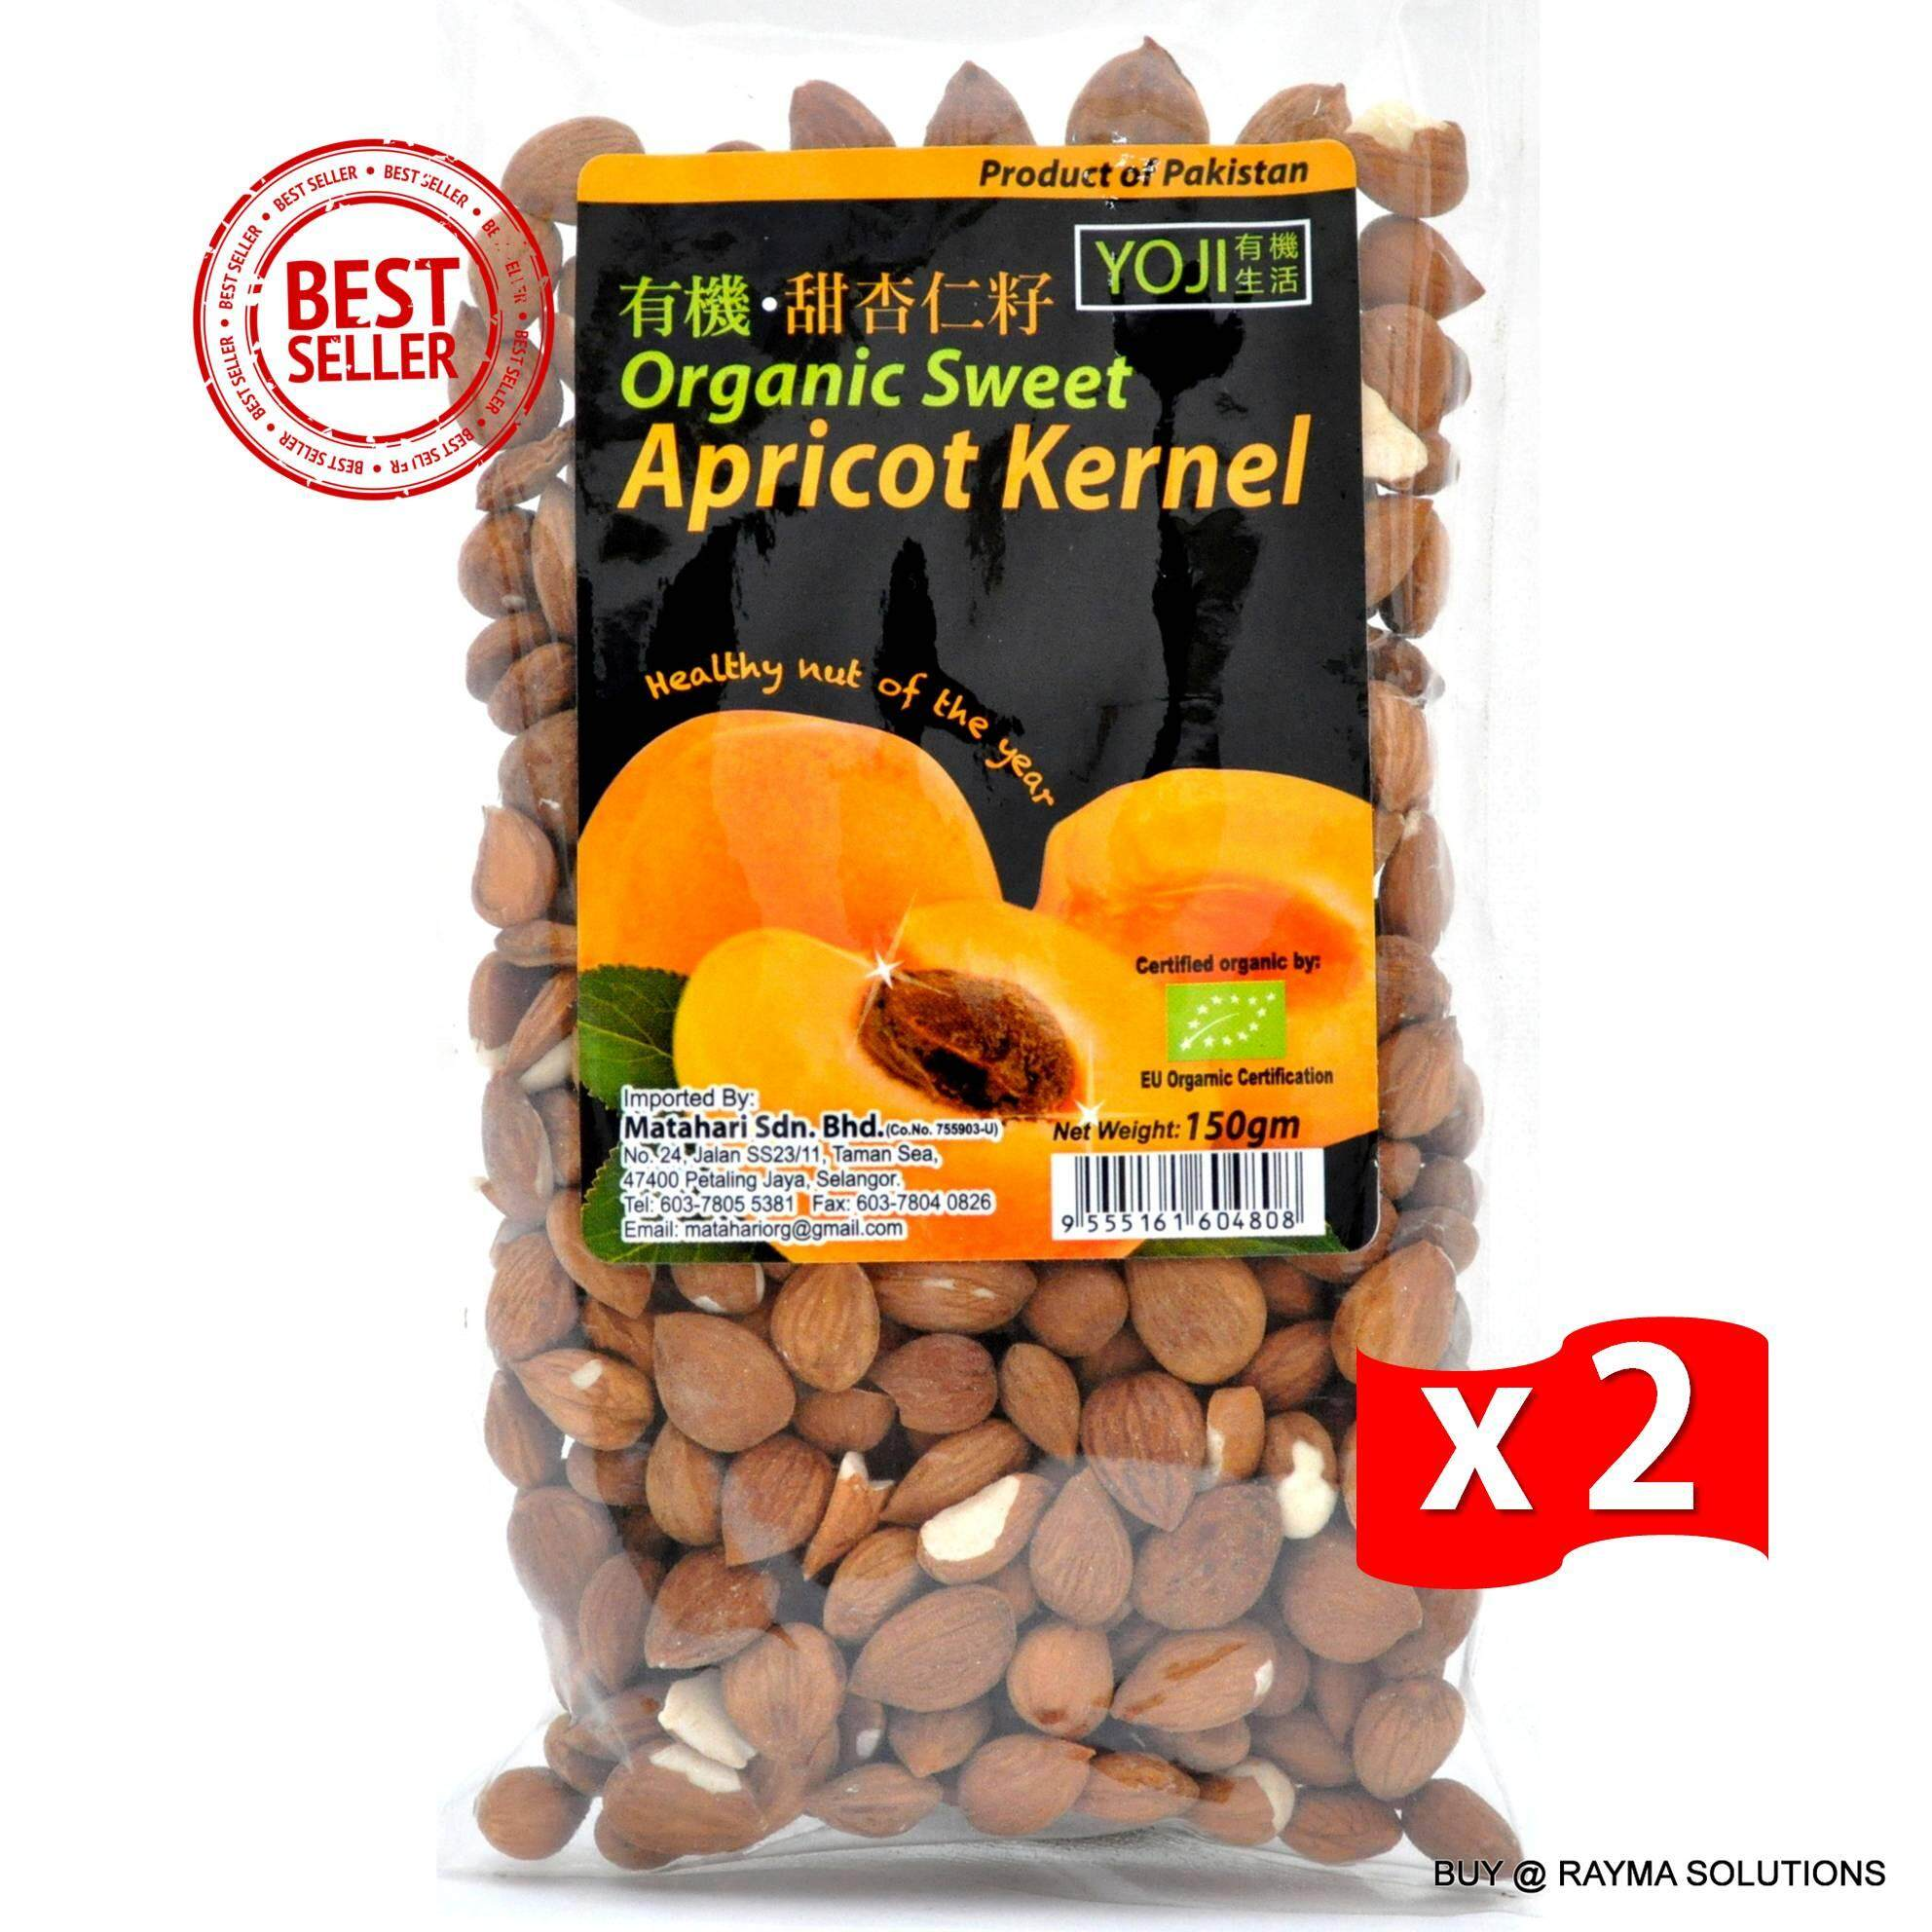 MH FOOD Organic Sweet Apricot Kernel 150g (Twin Pack)